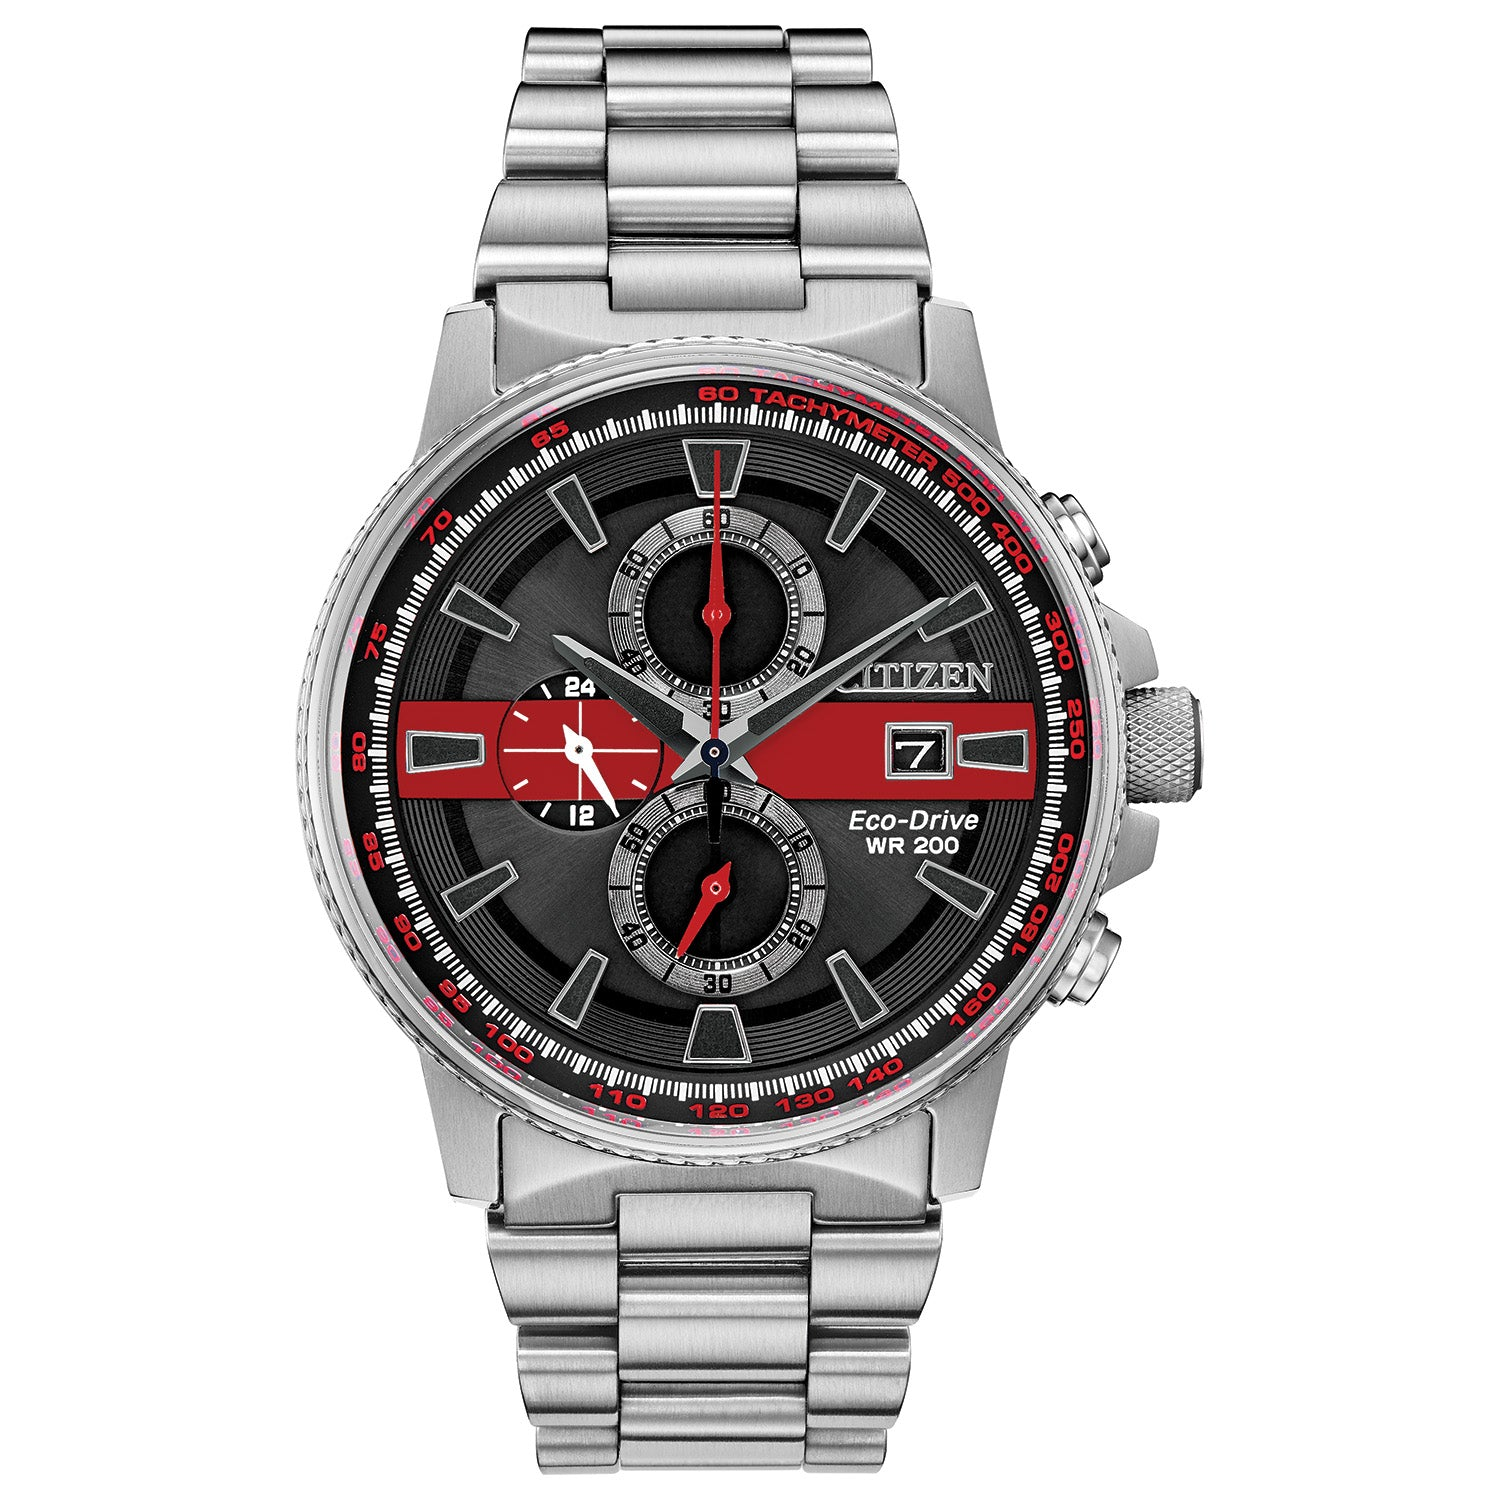 Citizen Men's Thin Red Line Watch Chronograph 200M WR Eco ... - photo #8